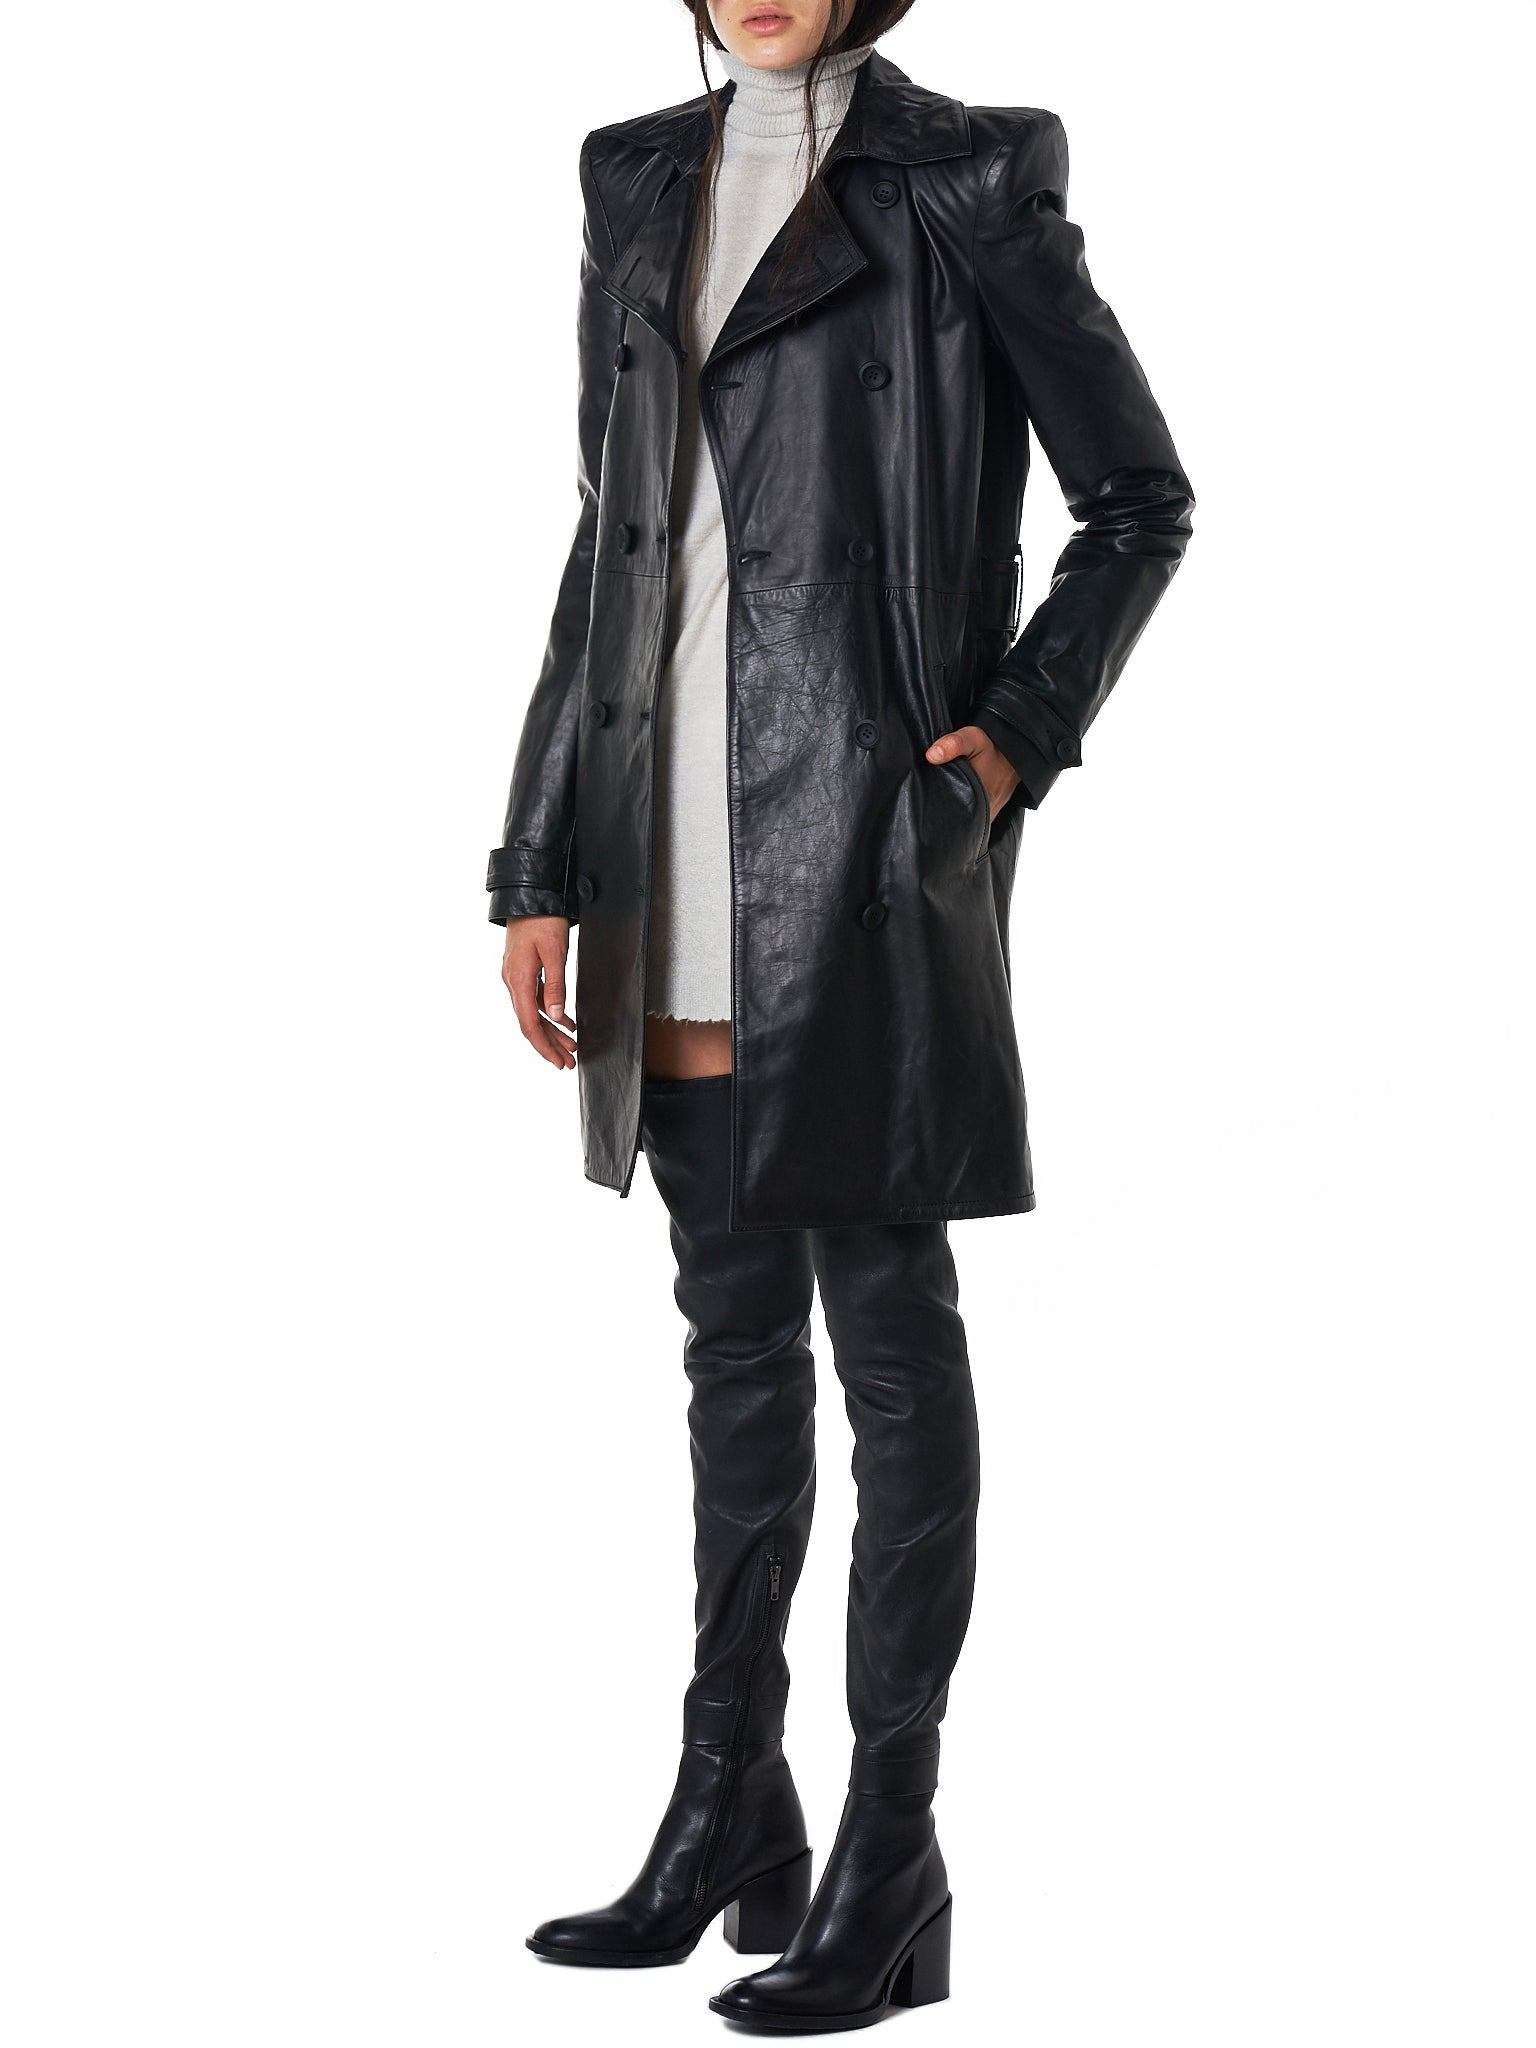 Unravel Leather Coat - Hlorenzo Style